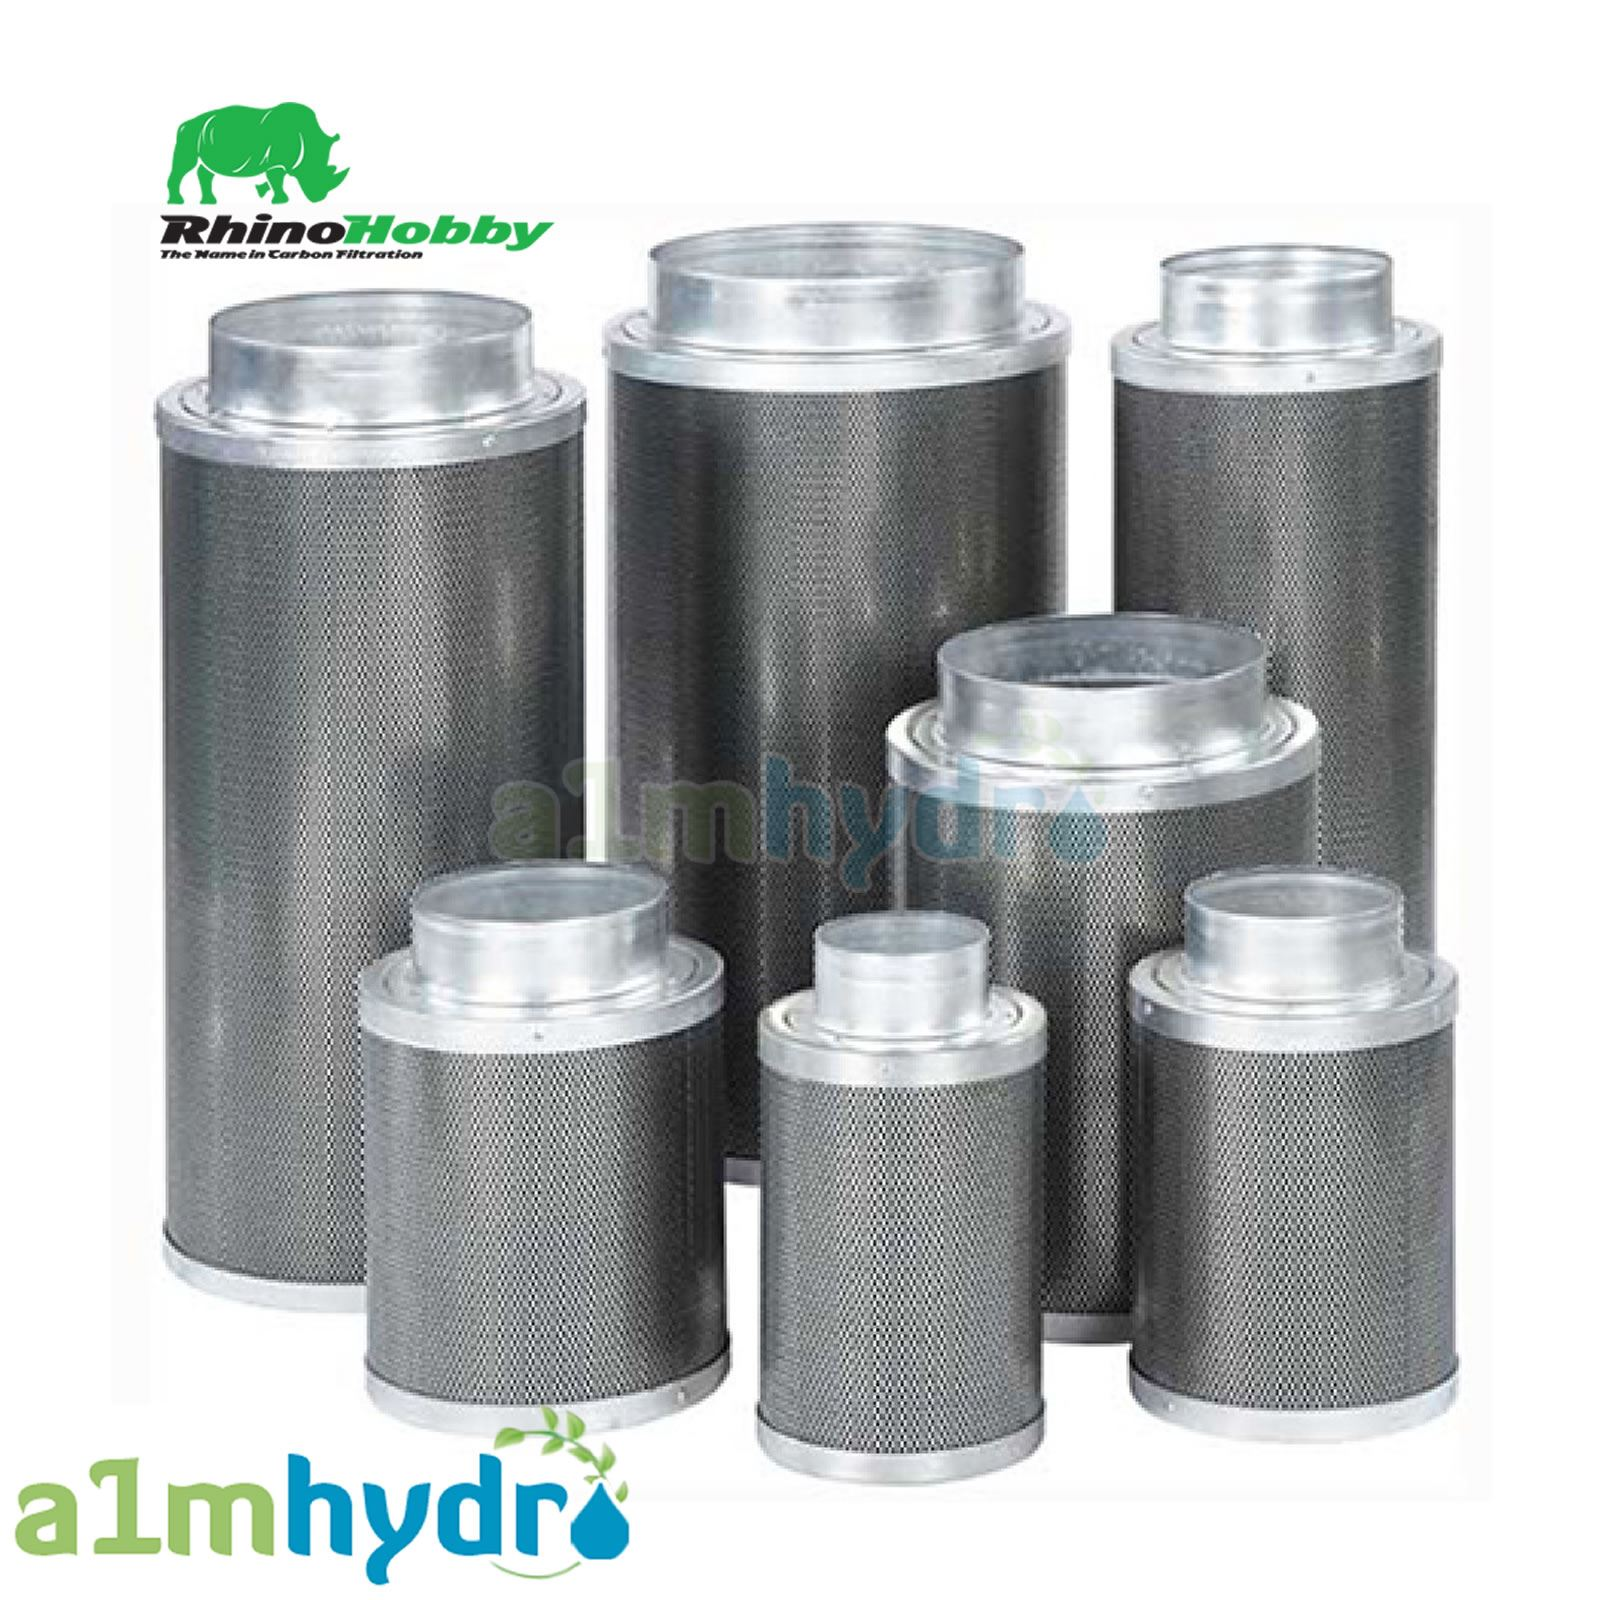 Rhino Pro /& Hobby Filter 4 5 6 8 10 12 Inch Carbon Hydroponics FREE ITEMS